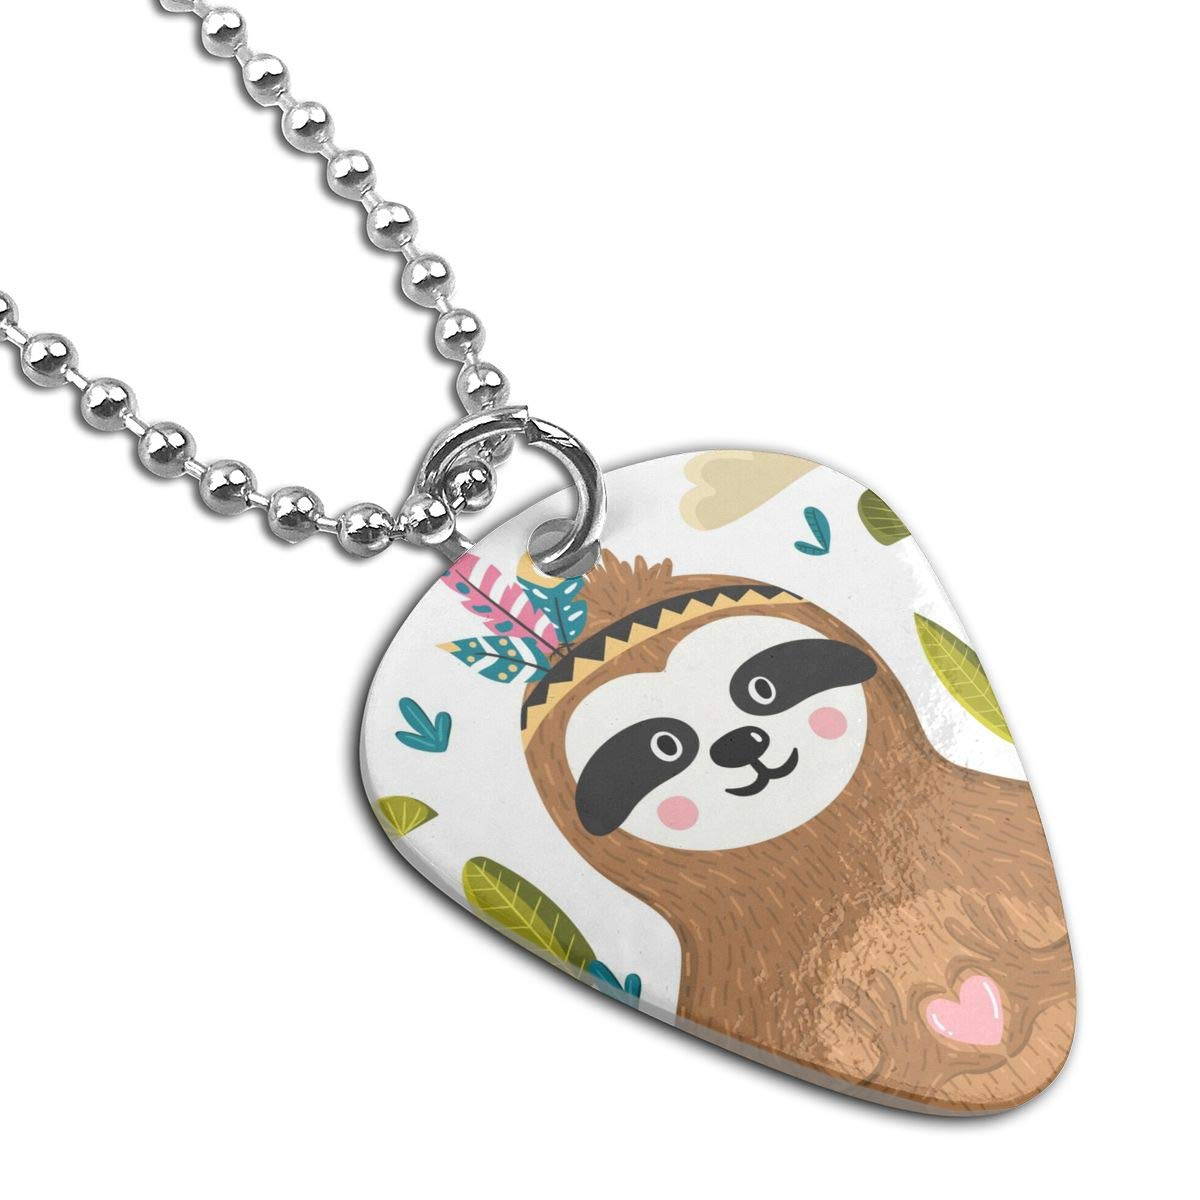 Cute Baby Sloth Holding Heart Custom Guitar Pick Pendant Necklace Keychain